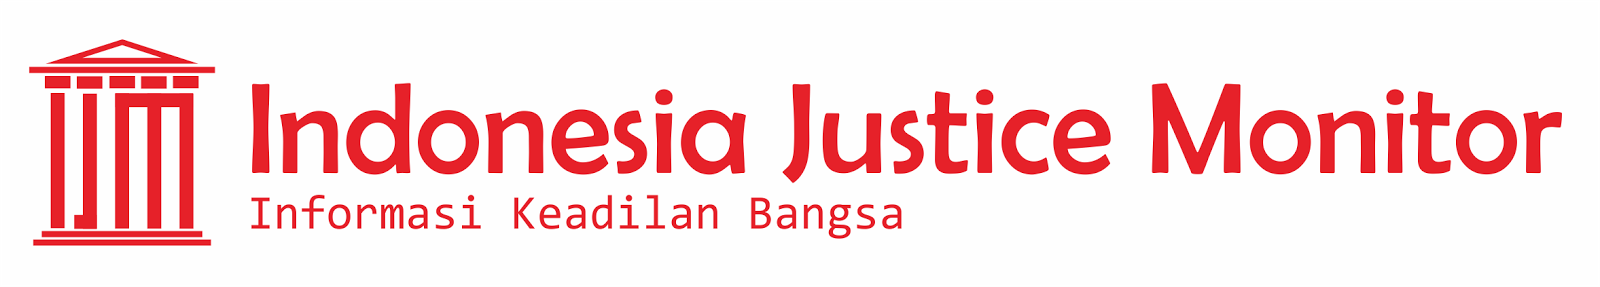 Indonesia Justice Monitor